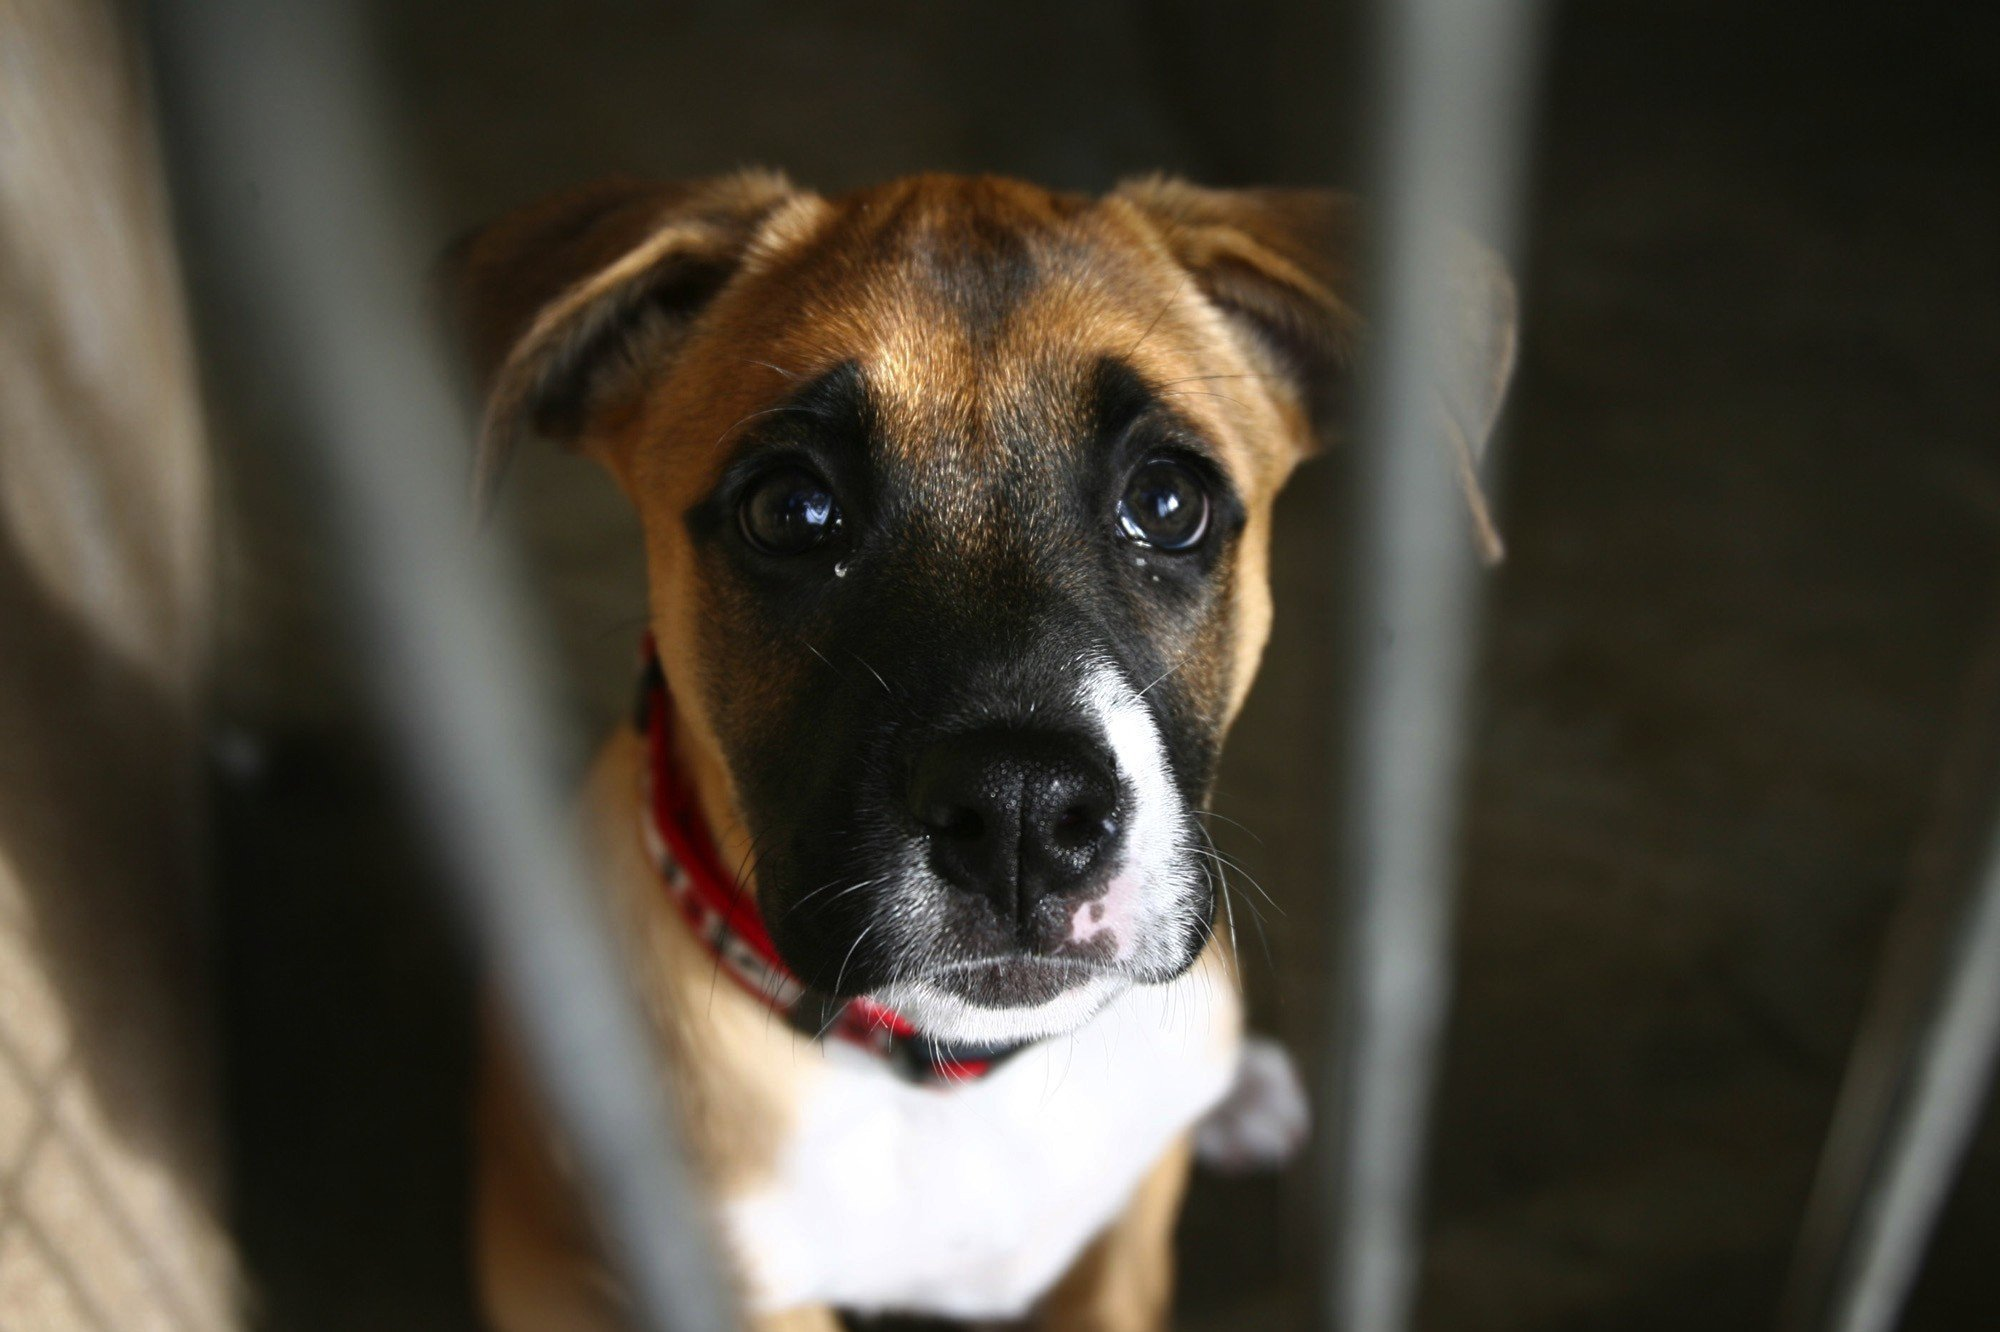 Progressive Near Me >> Irvine shelter ordered to stop euthanizing animals; director resigns - LA Times